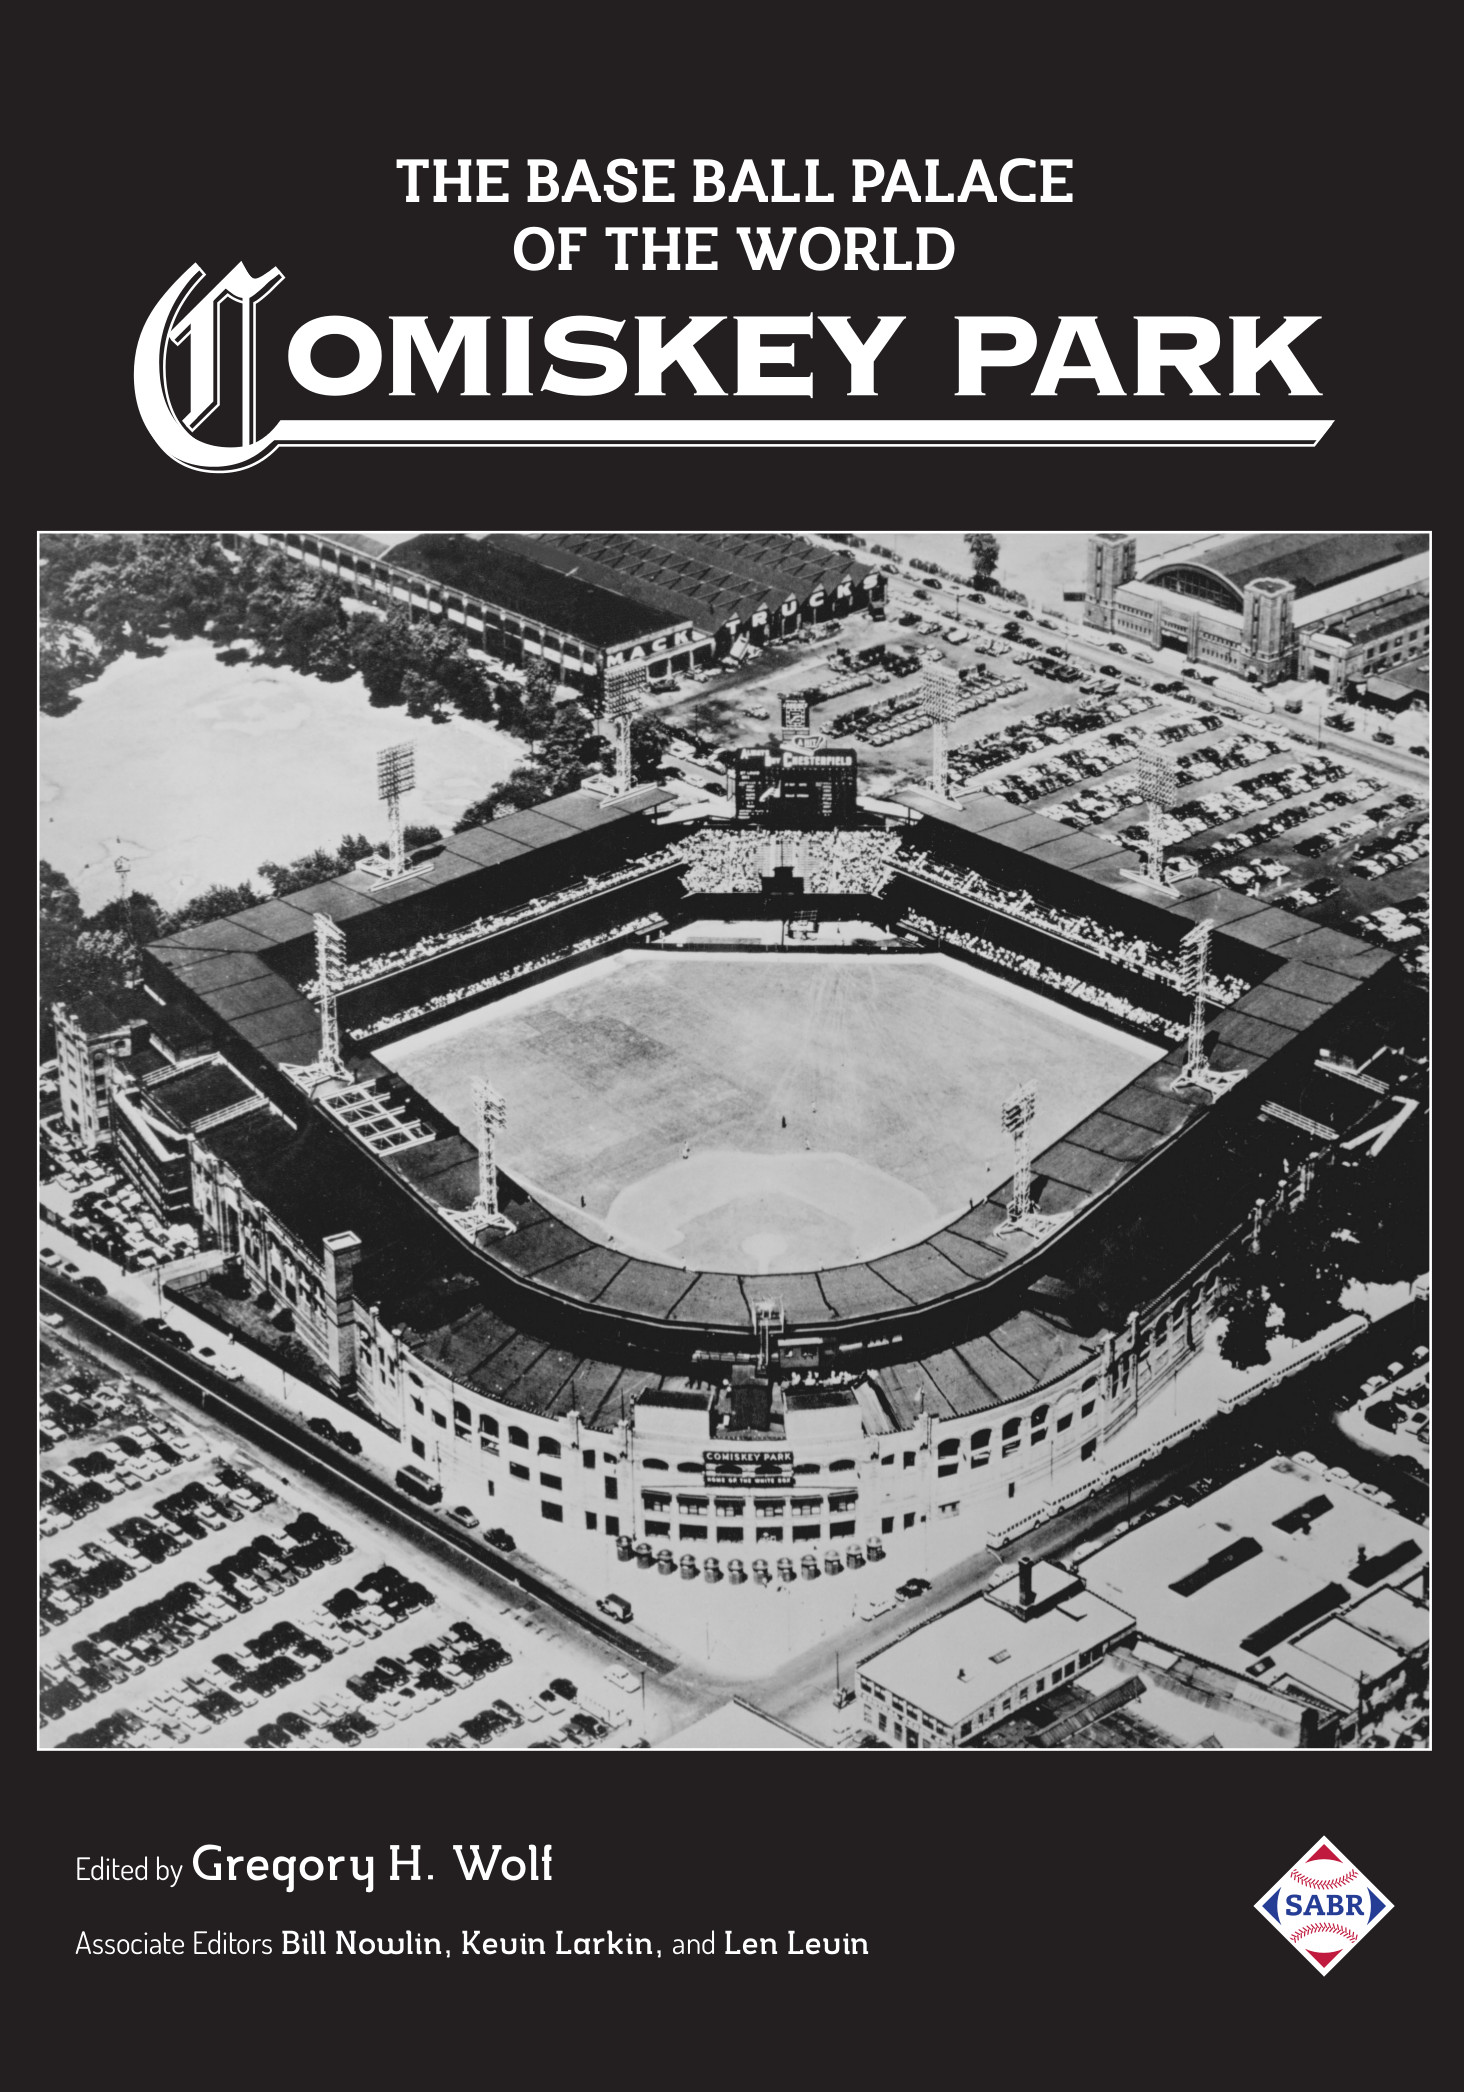 Comiskey Park book cover